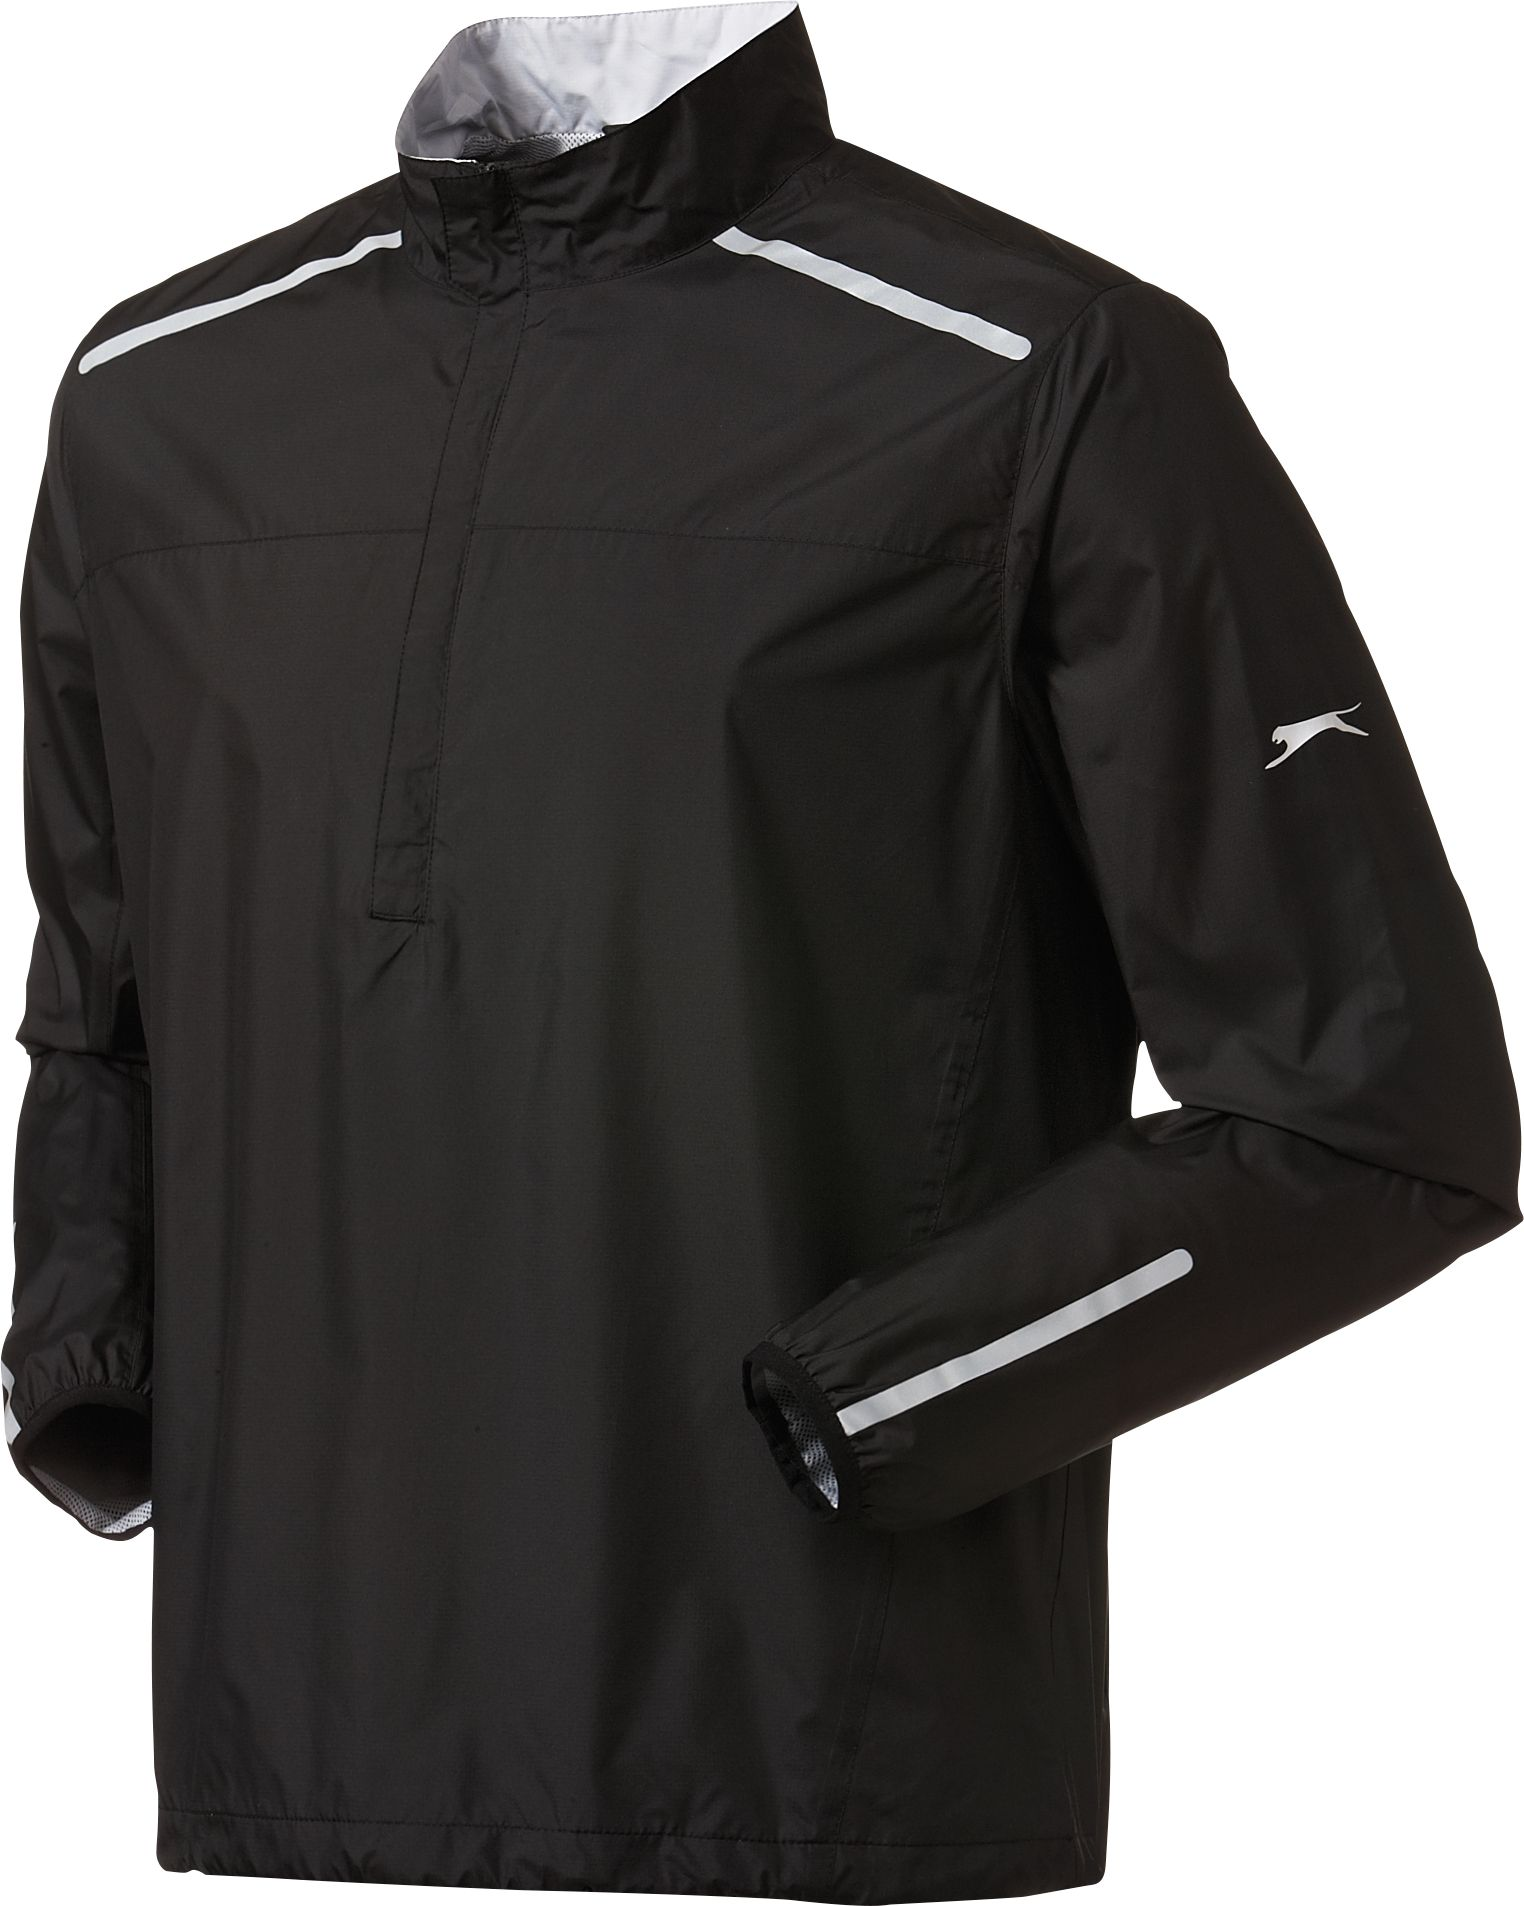 Slazenger Men's Tech Packable Golf Rain Jacket | DICK'S Sporting Goods